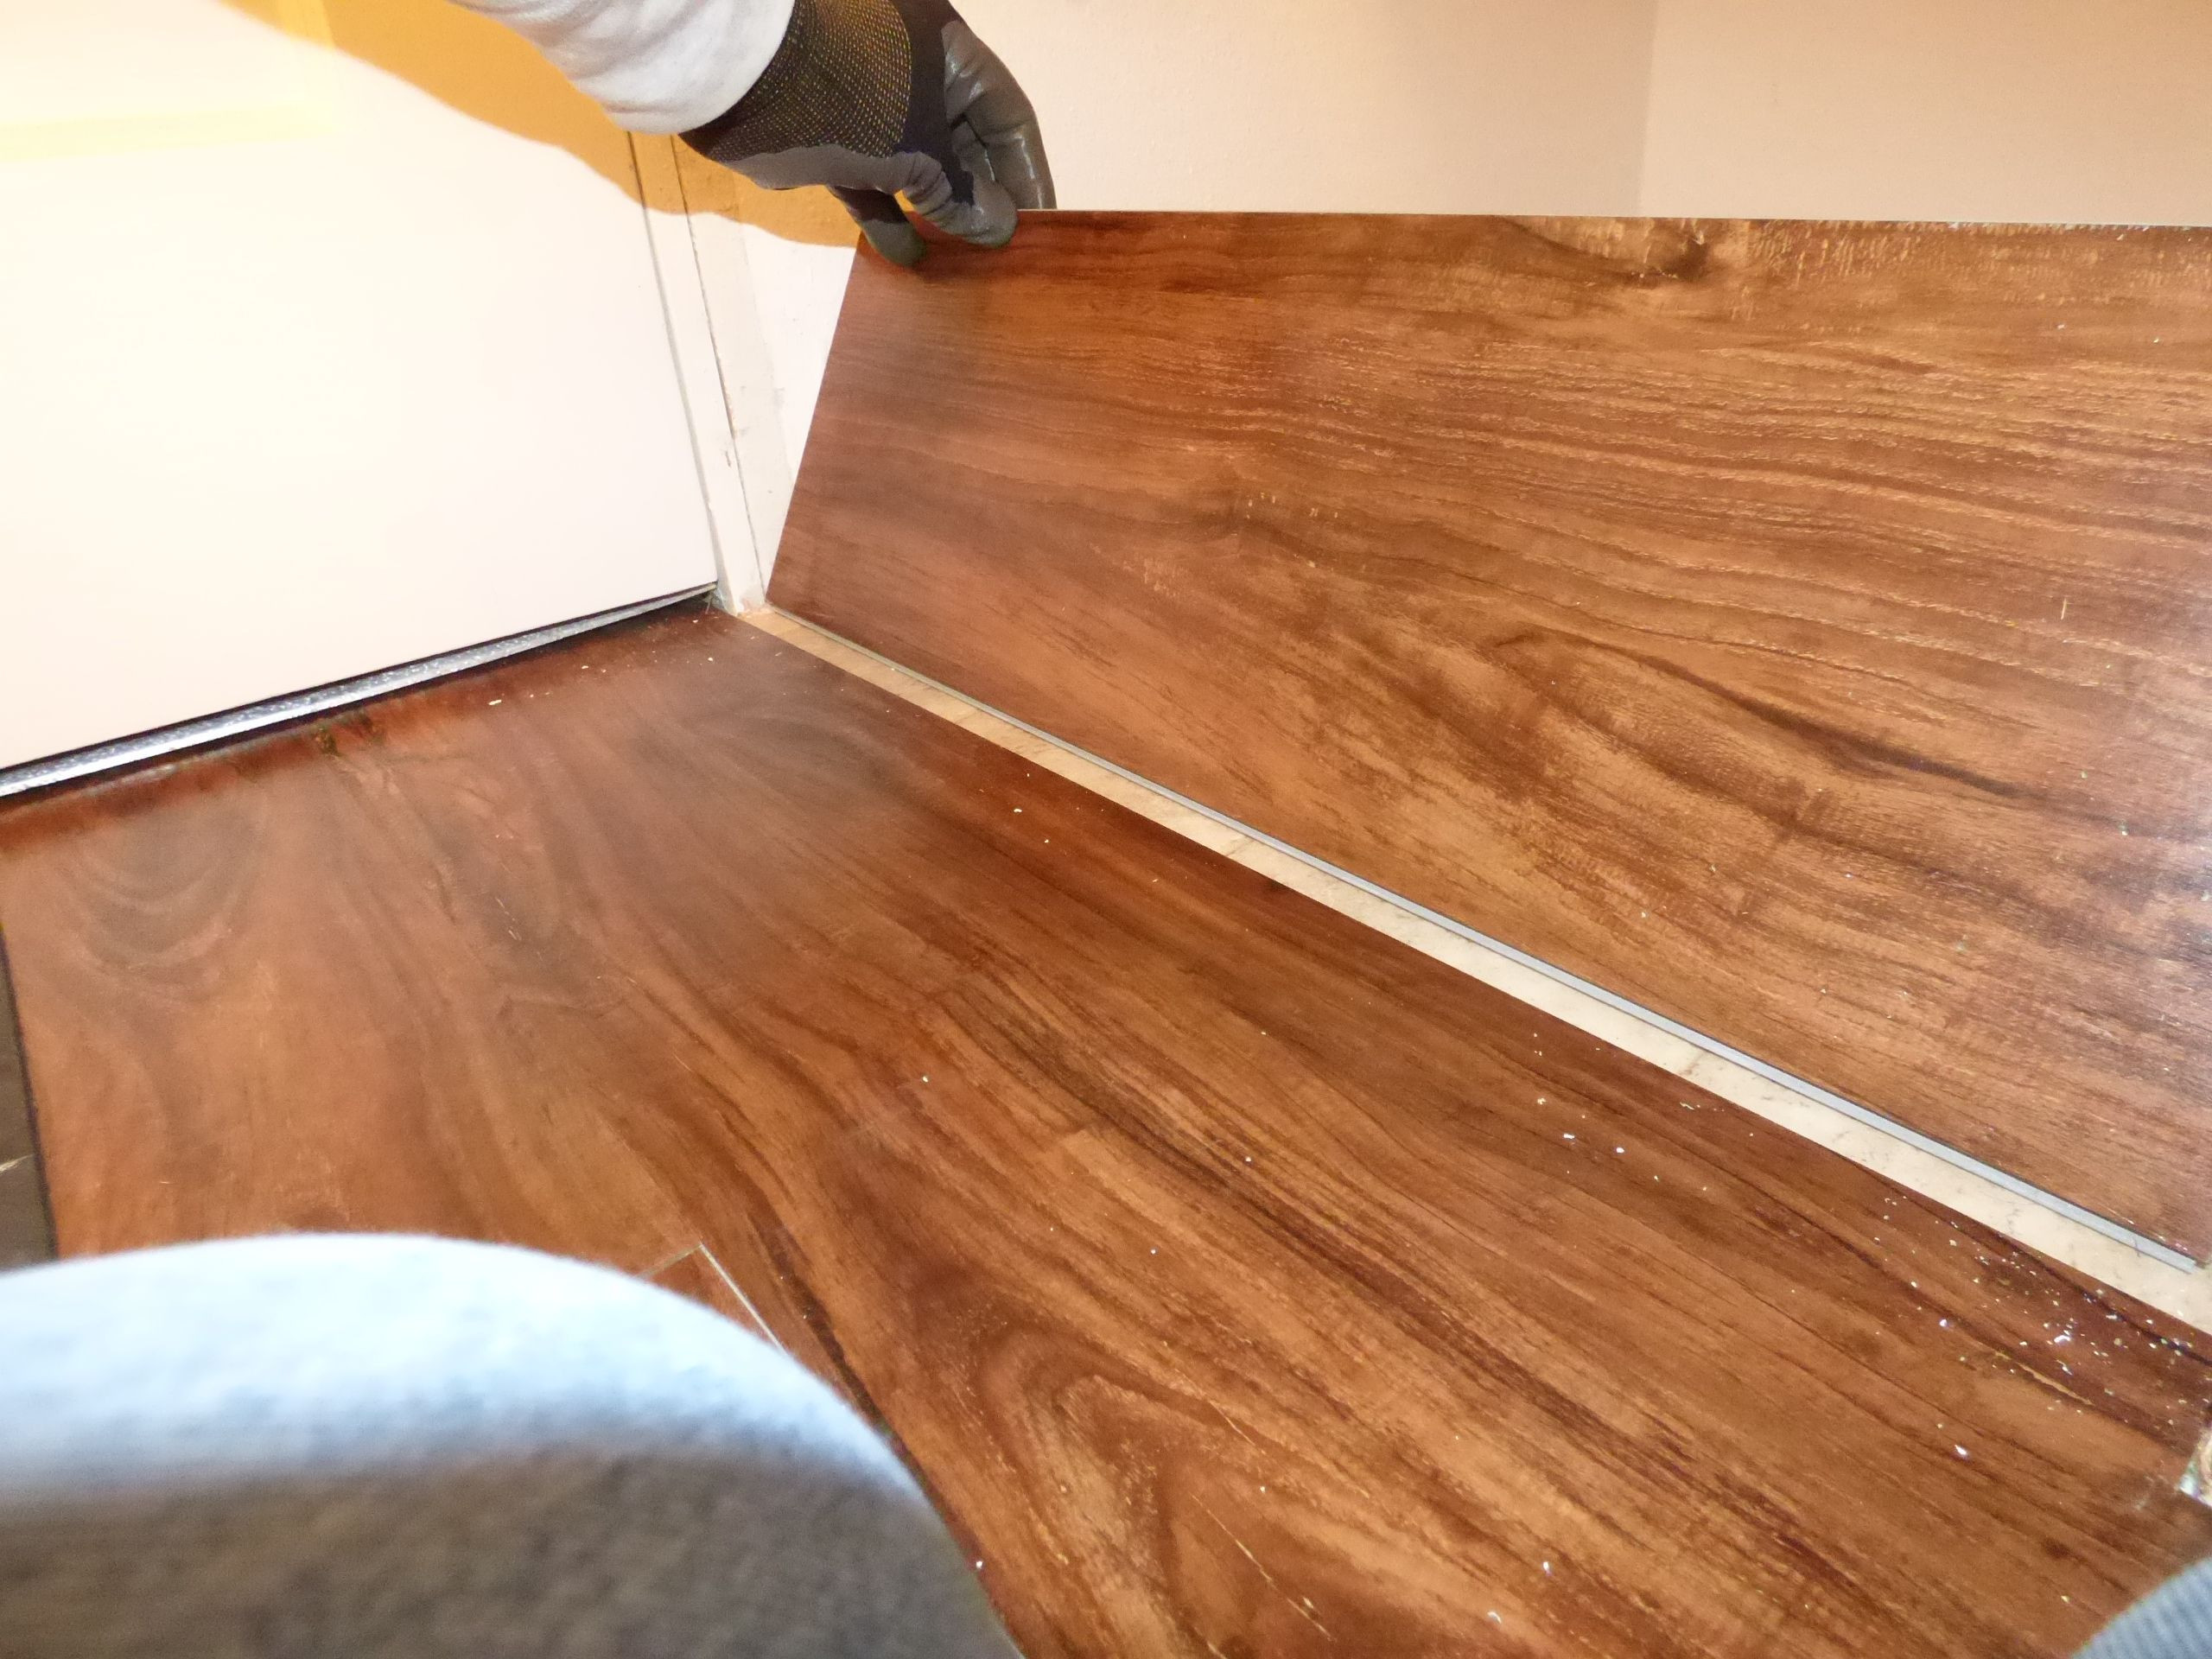 how to install hardwood flooring under toe kick of its easy and fast to install plank vinyl flooring pertaining to backwards installing plank flooring 56a4a0535f9b58b7d0d7e38e jpg